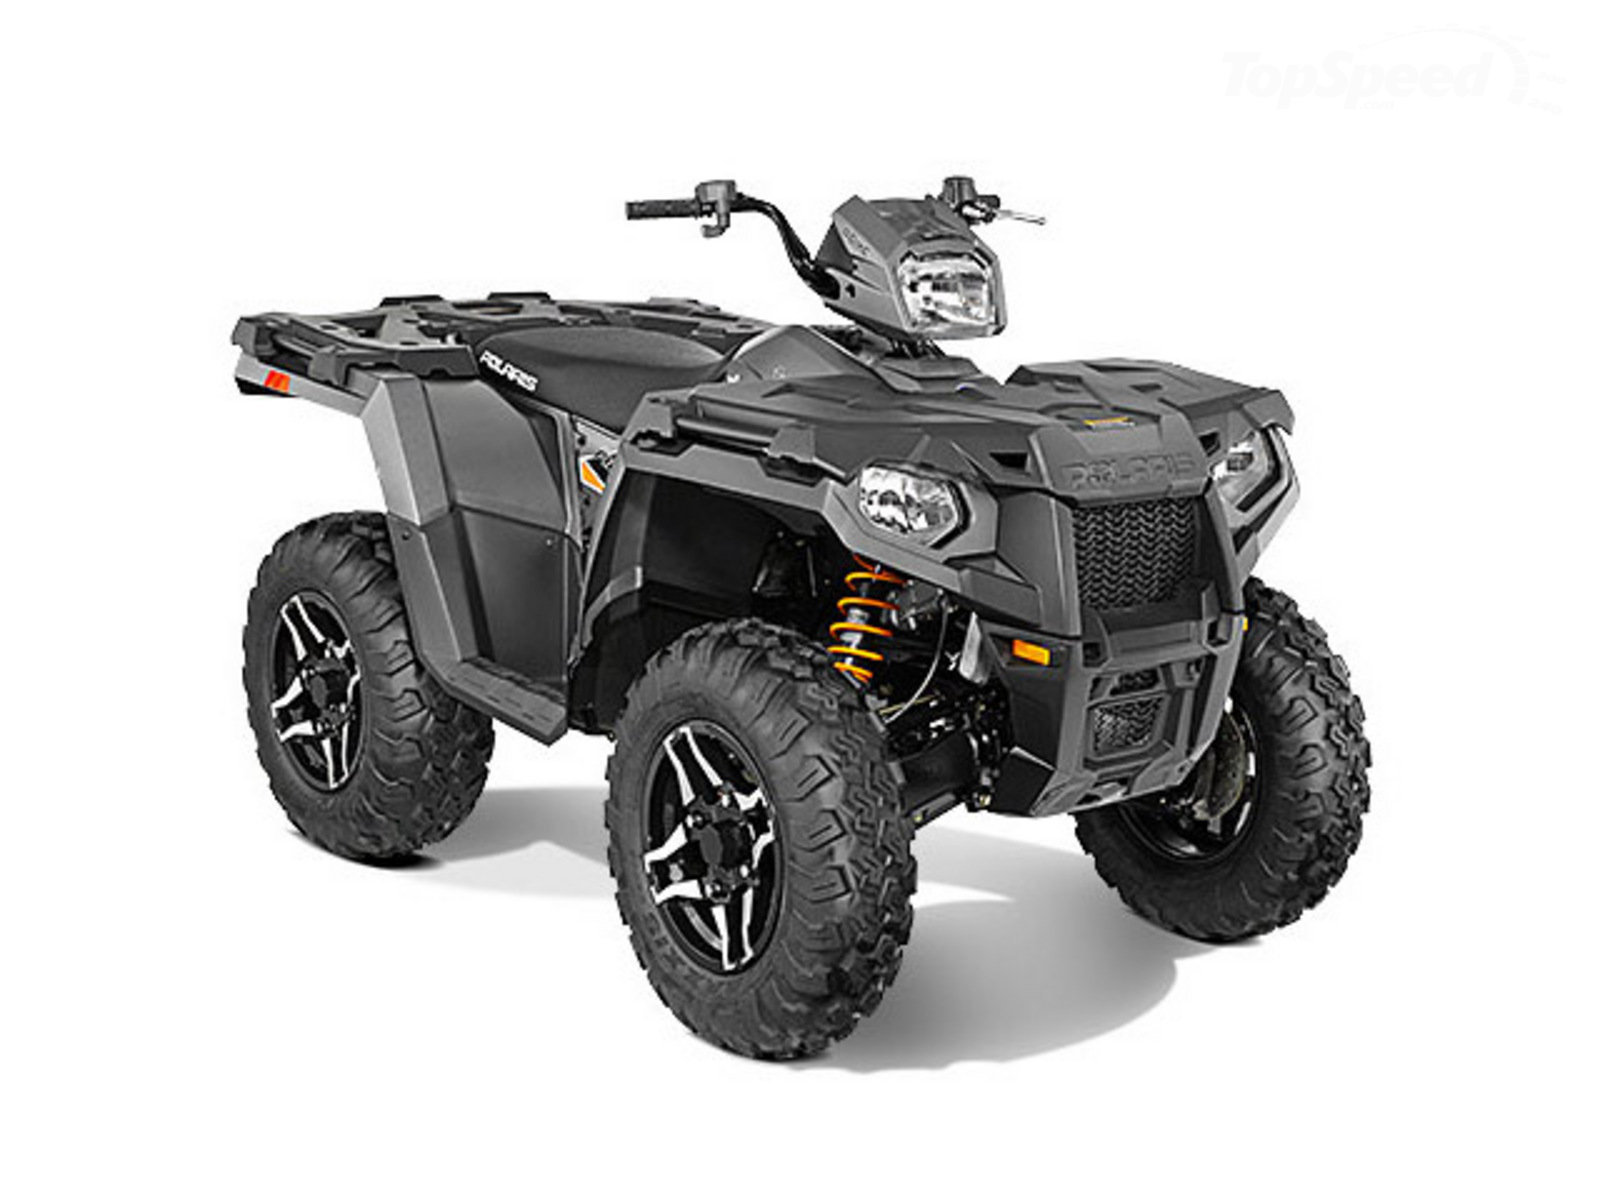 2015 polaris sportsman 570 sp review top speed. Black Bedroom Furniture Sets. Home Design Ideas